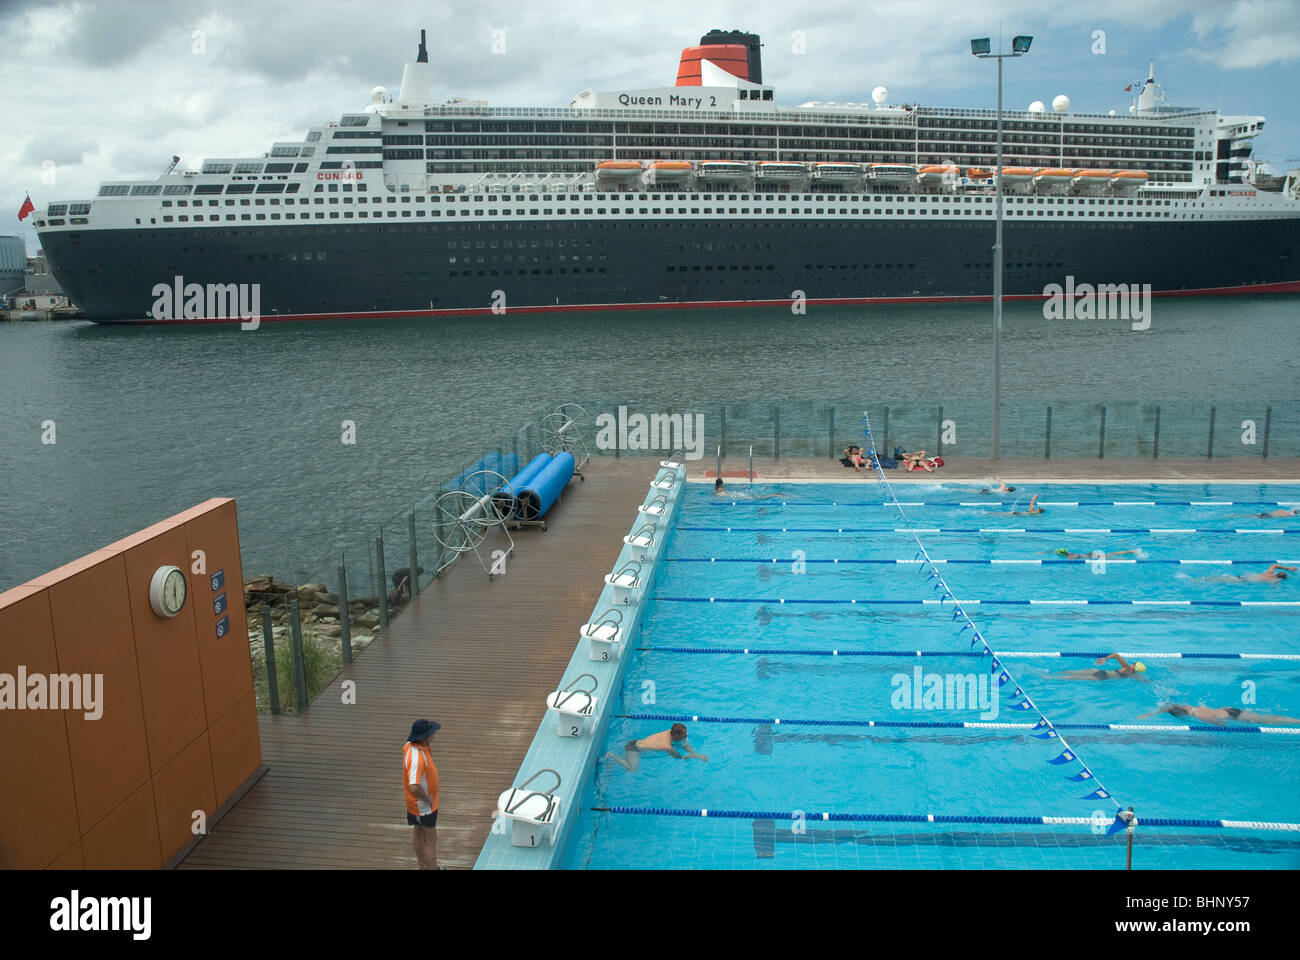 Berthed docked ship stock photos berthed docked ship - Queen mary swimming pool victoria ...